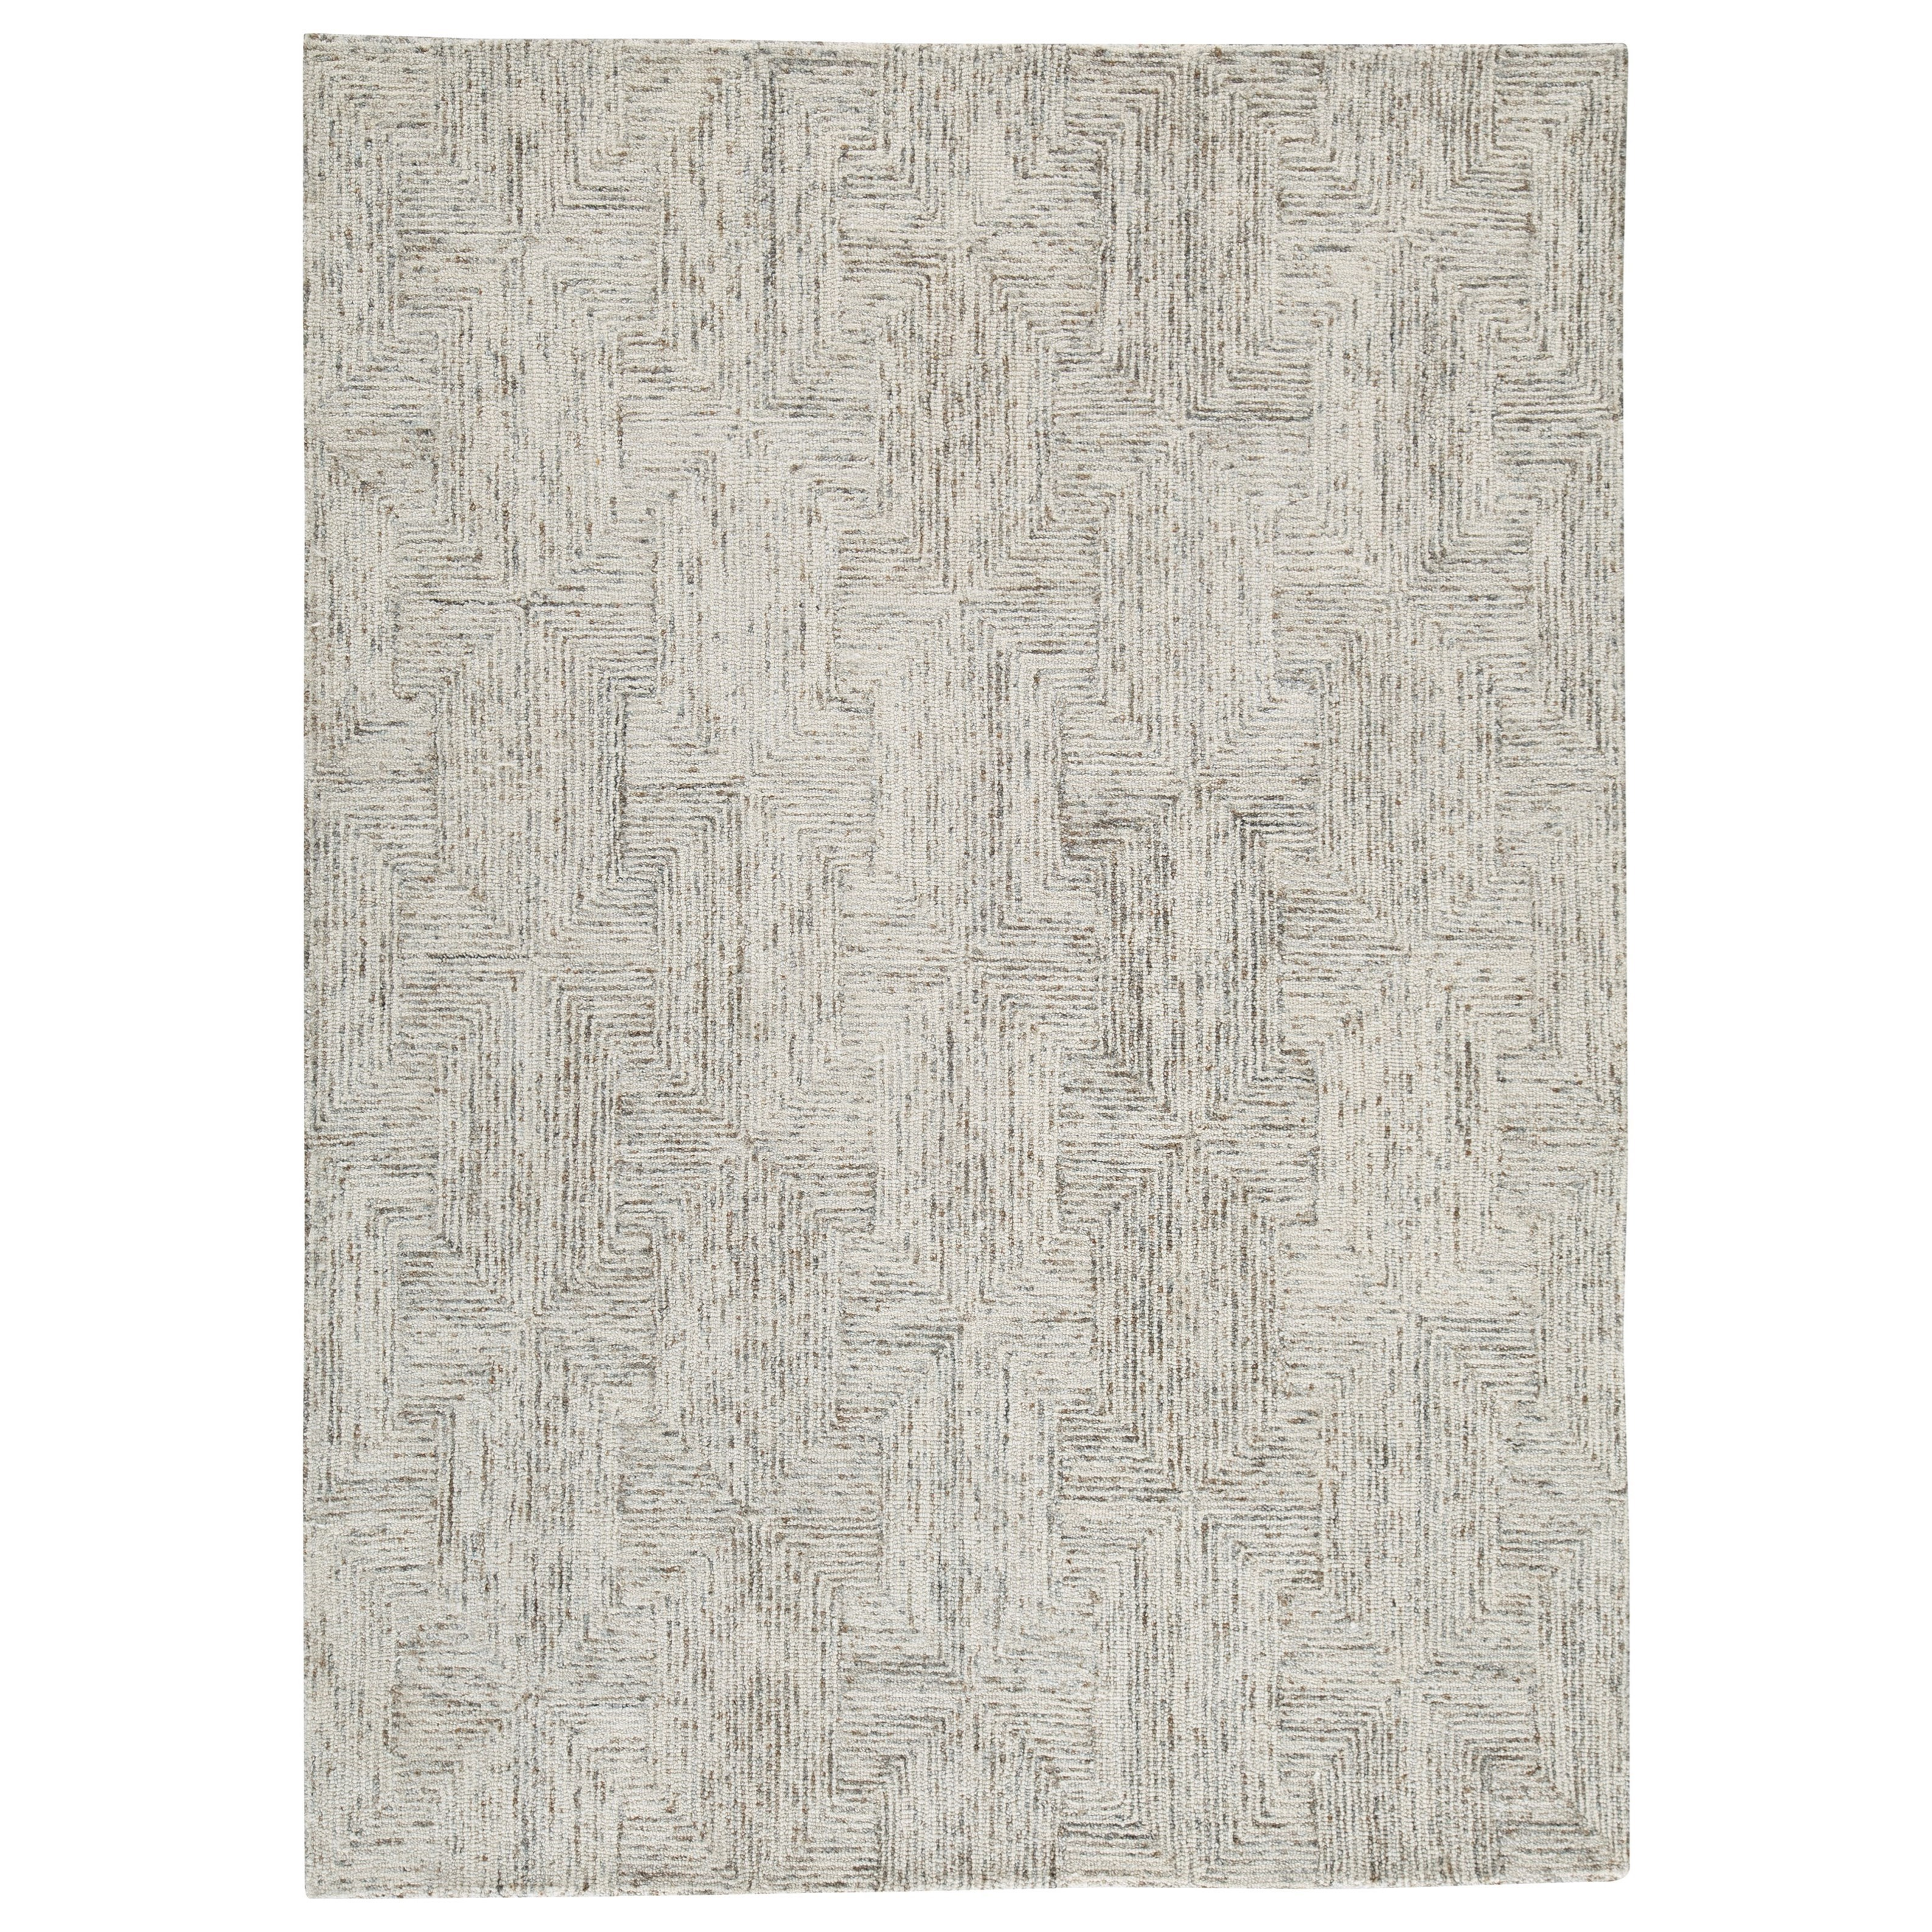 Contemporary Area Rugs Caronwell Ivory/Brown/Gray Large Rug by Signature Design by Ashley at Smart Buy Furniture